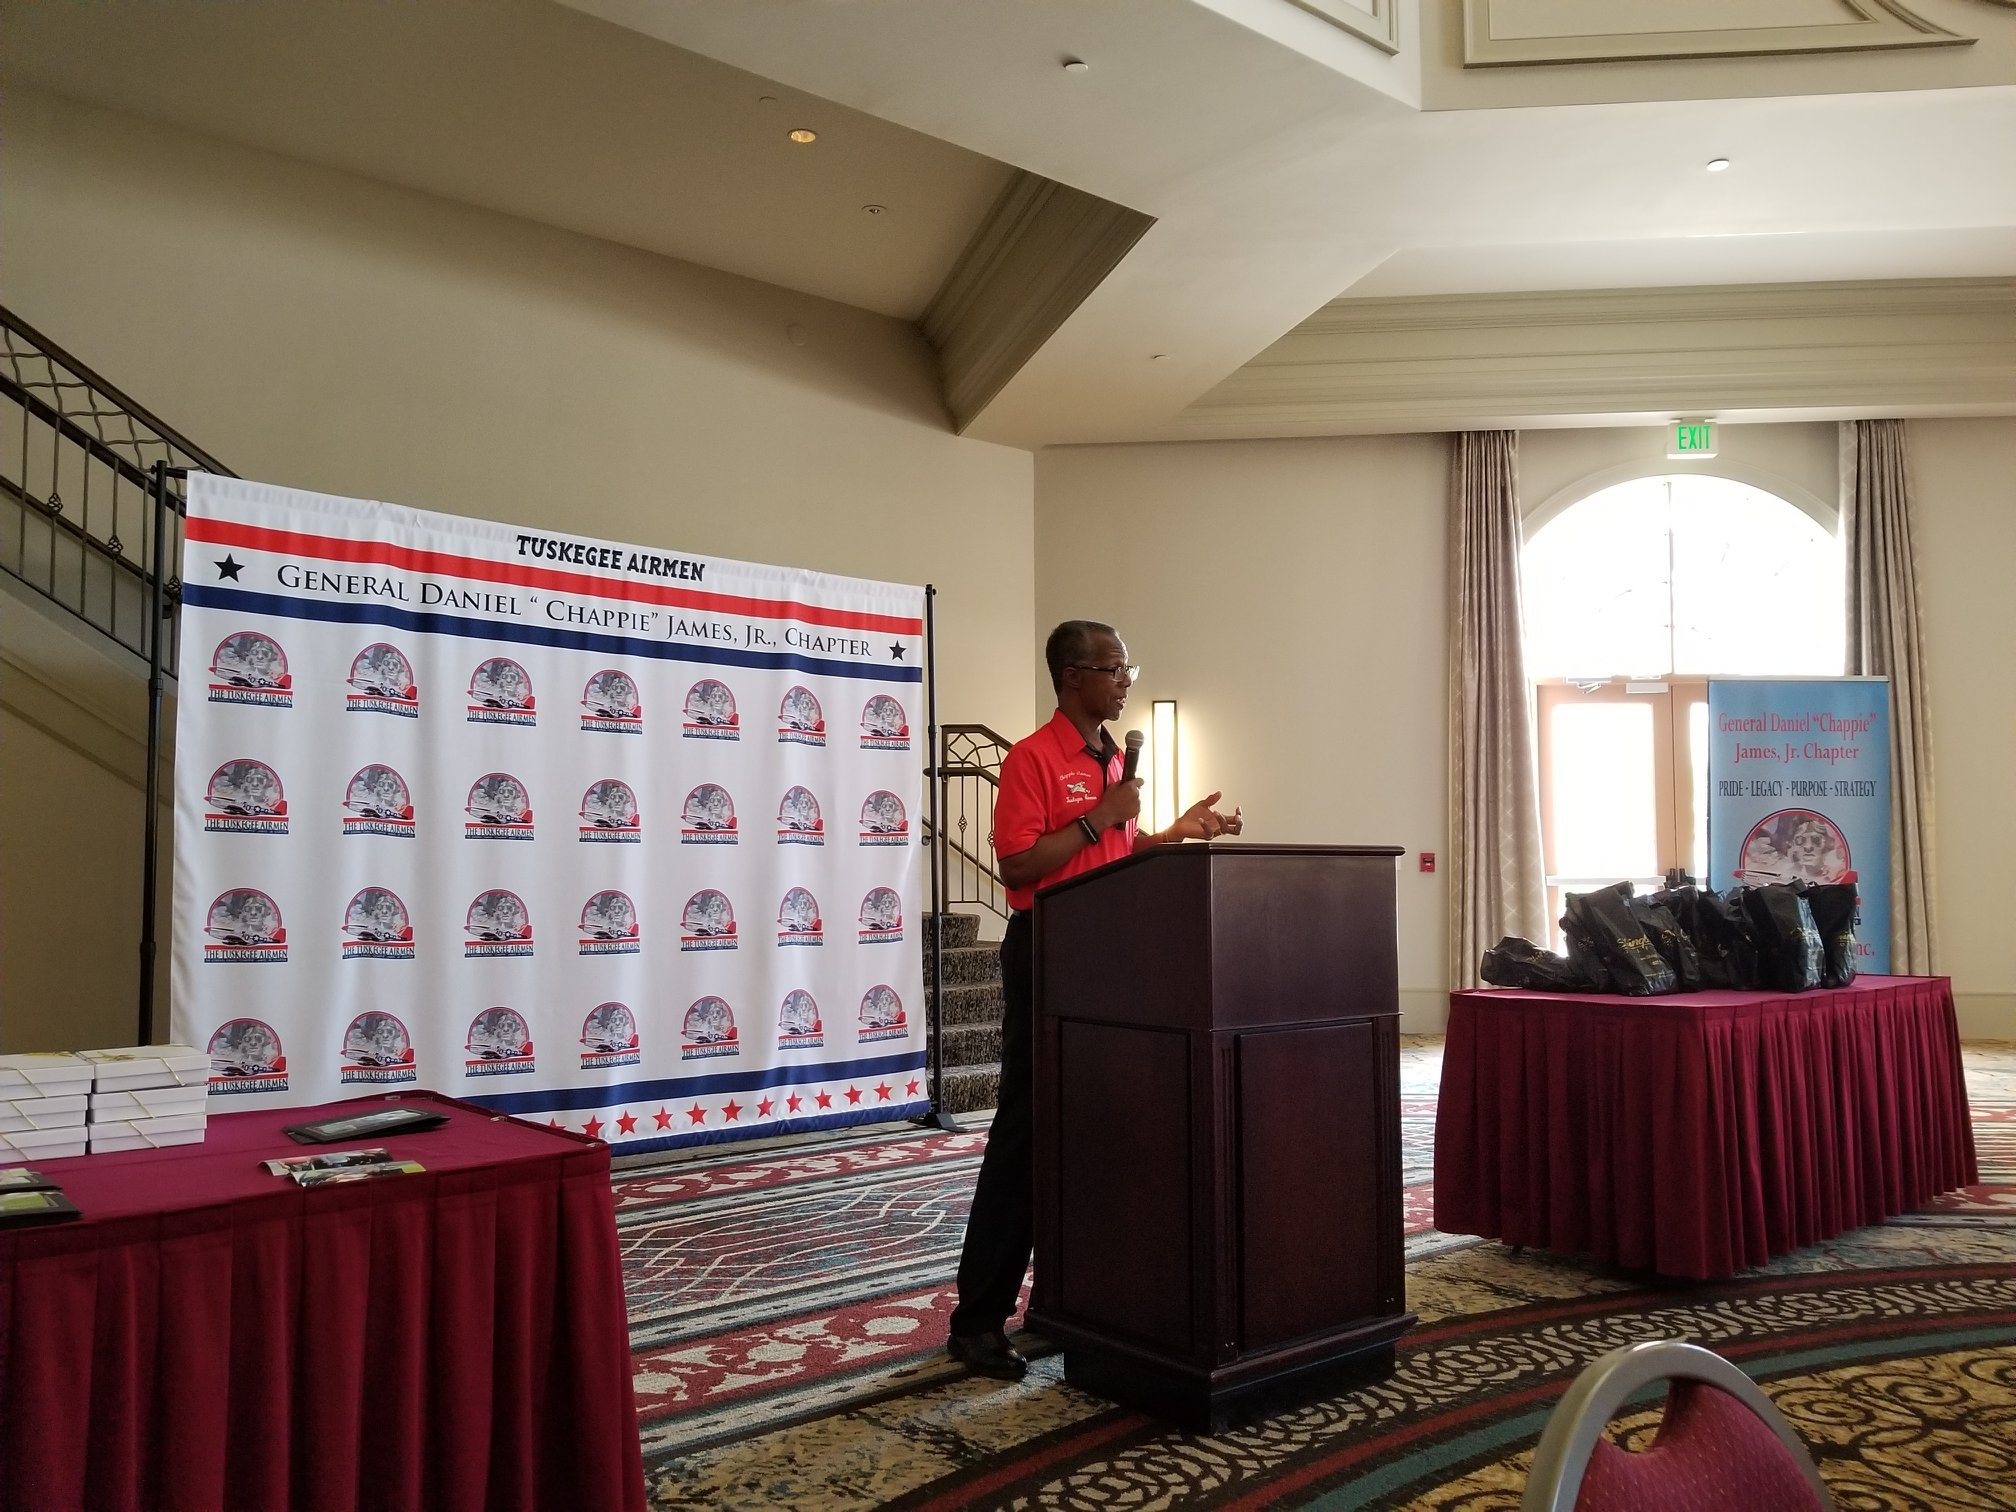 Tuskegee Airmen 2nd Annual Charity Golf Tournament gallery image #9